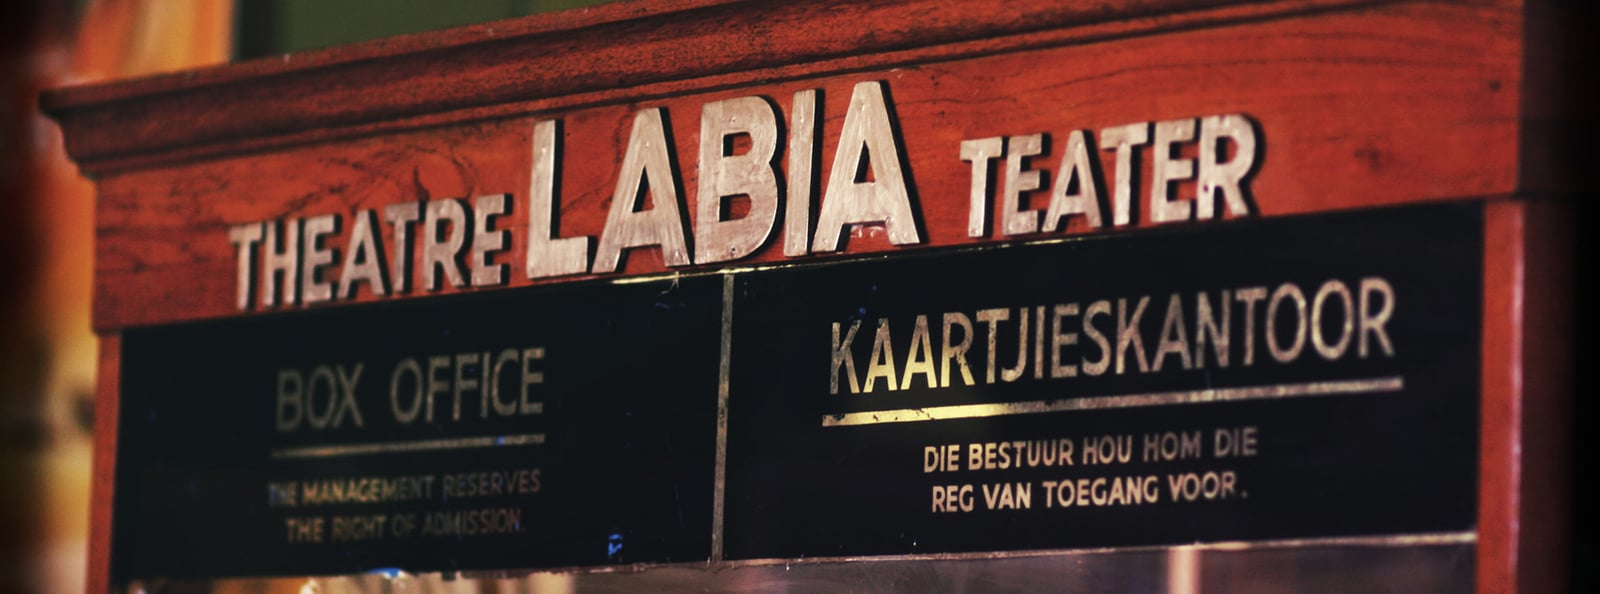 The Labia Theatre Labia Theatre